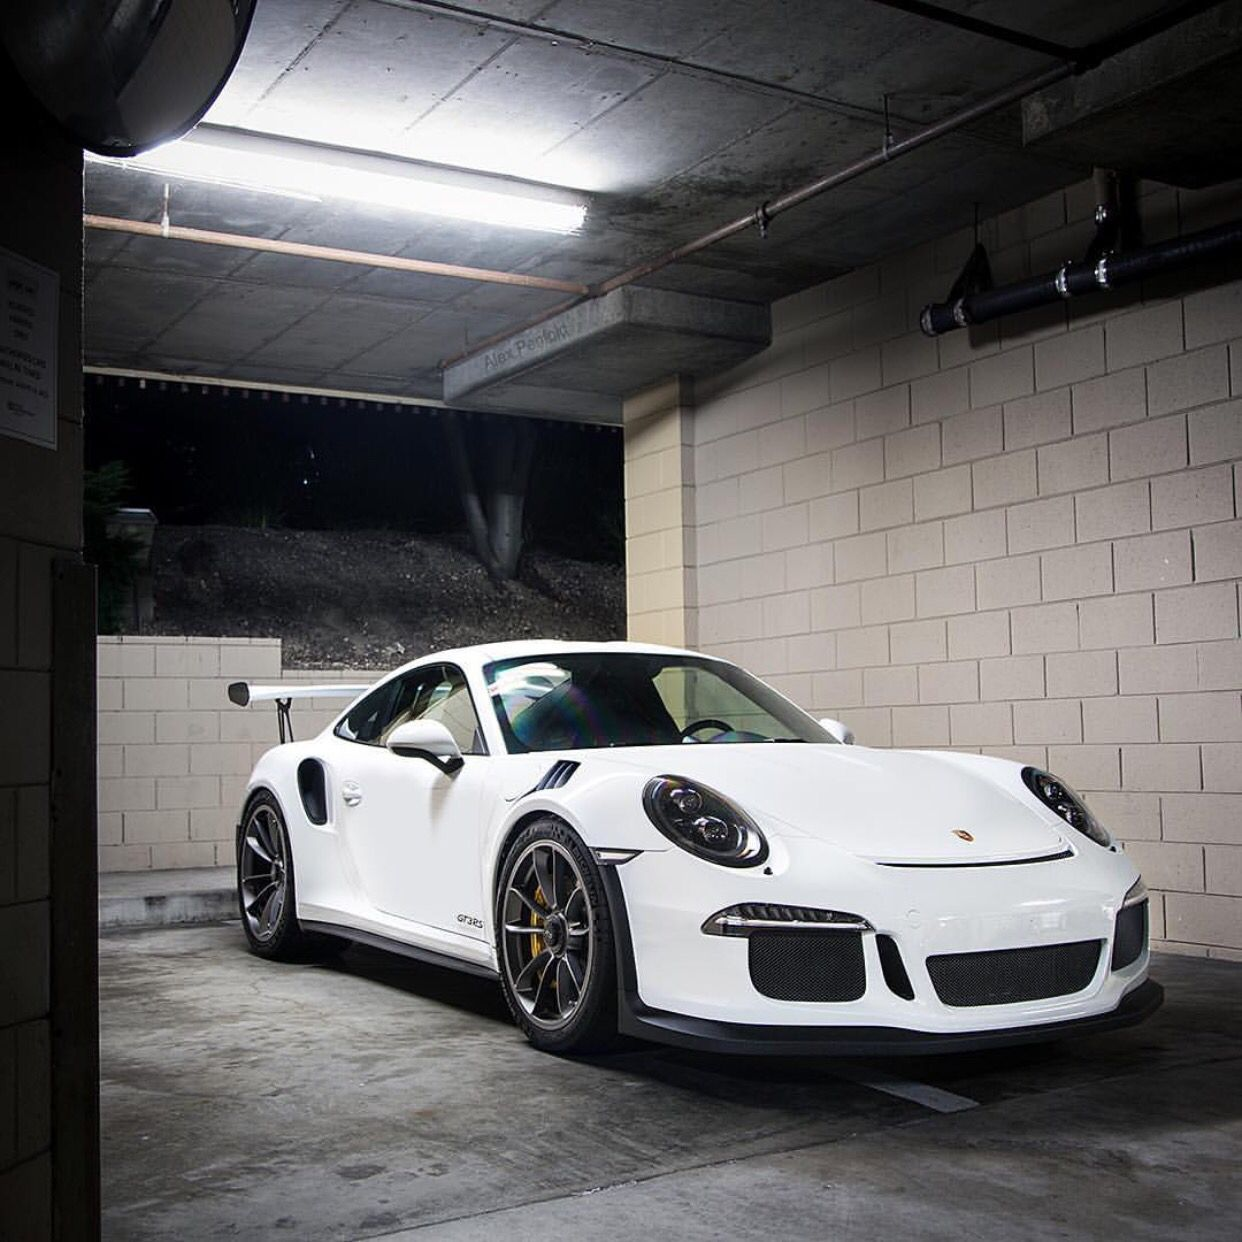 Porsche 991 GT3 RS painted in White Photo taken by: alex penfold on Instagram